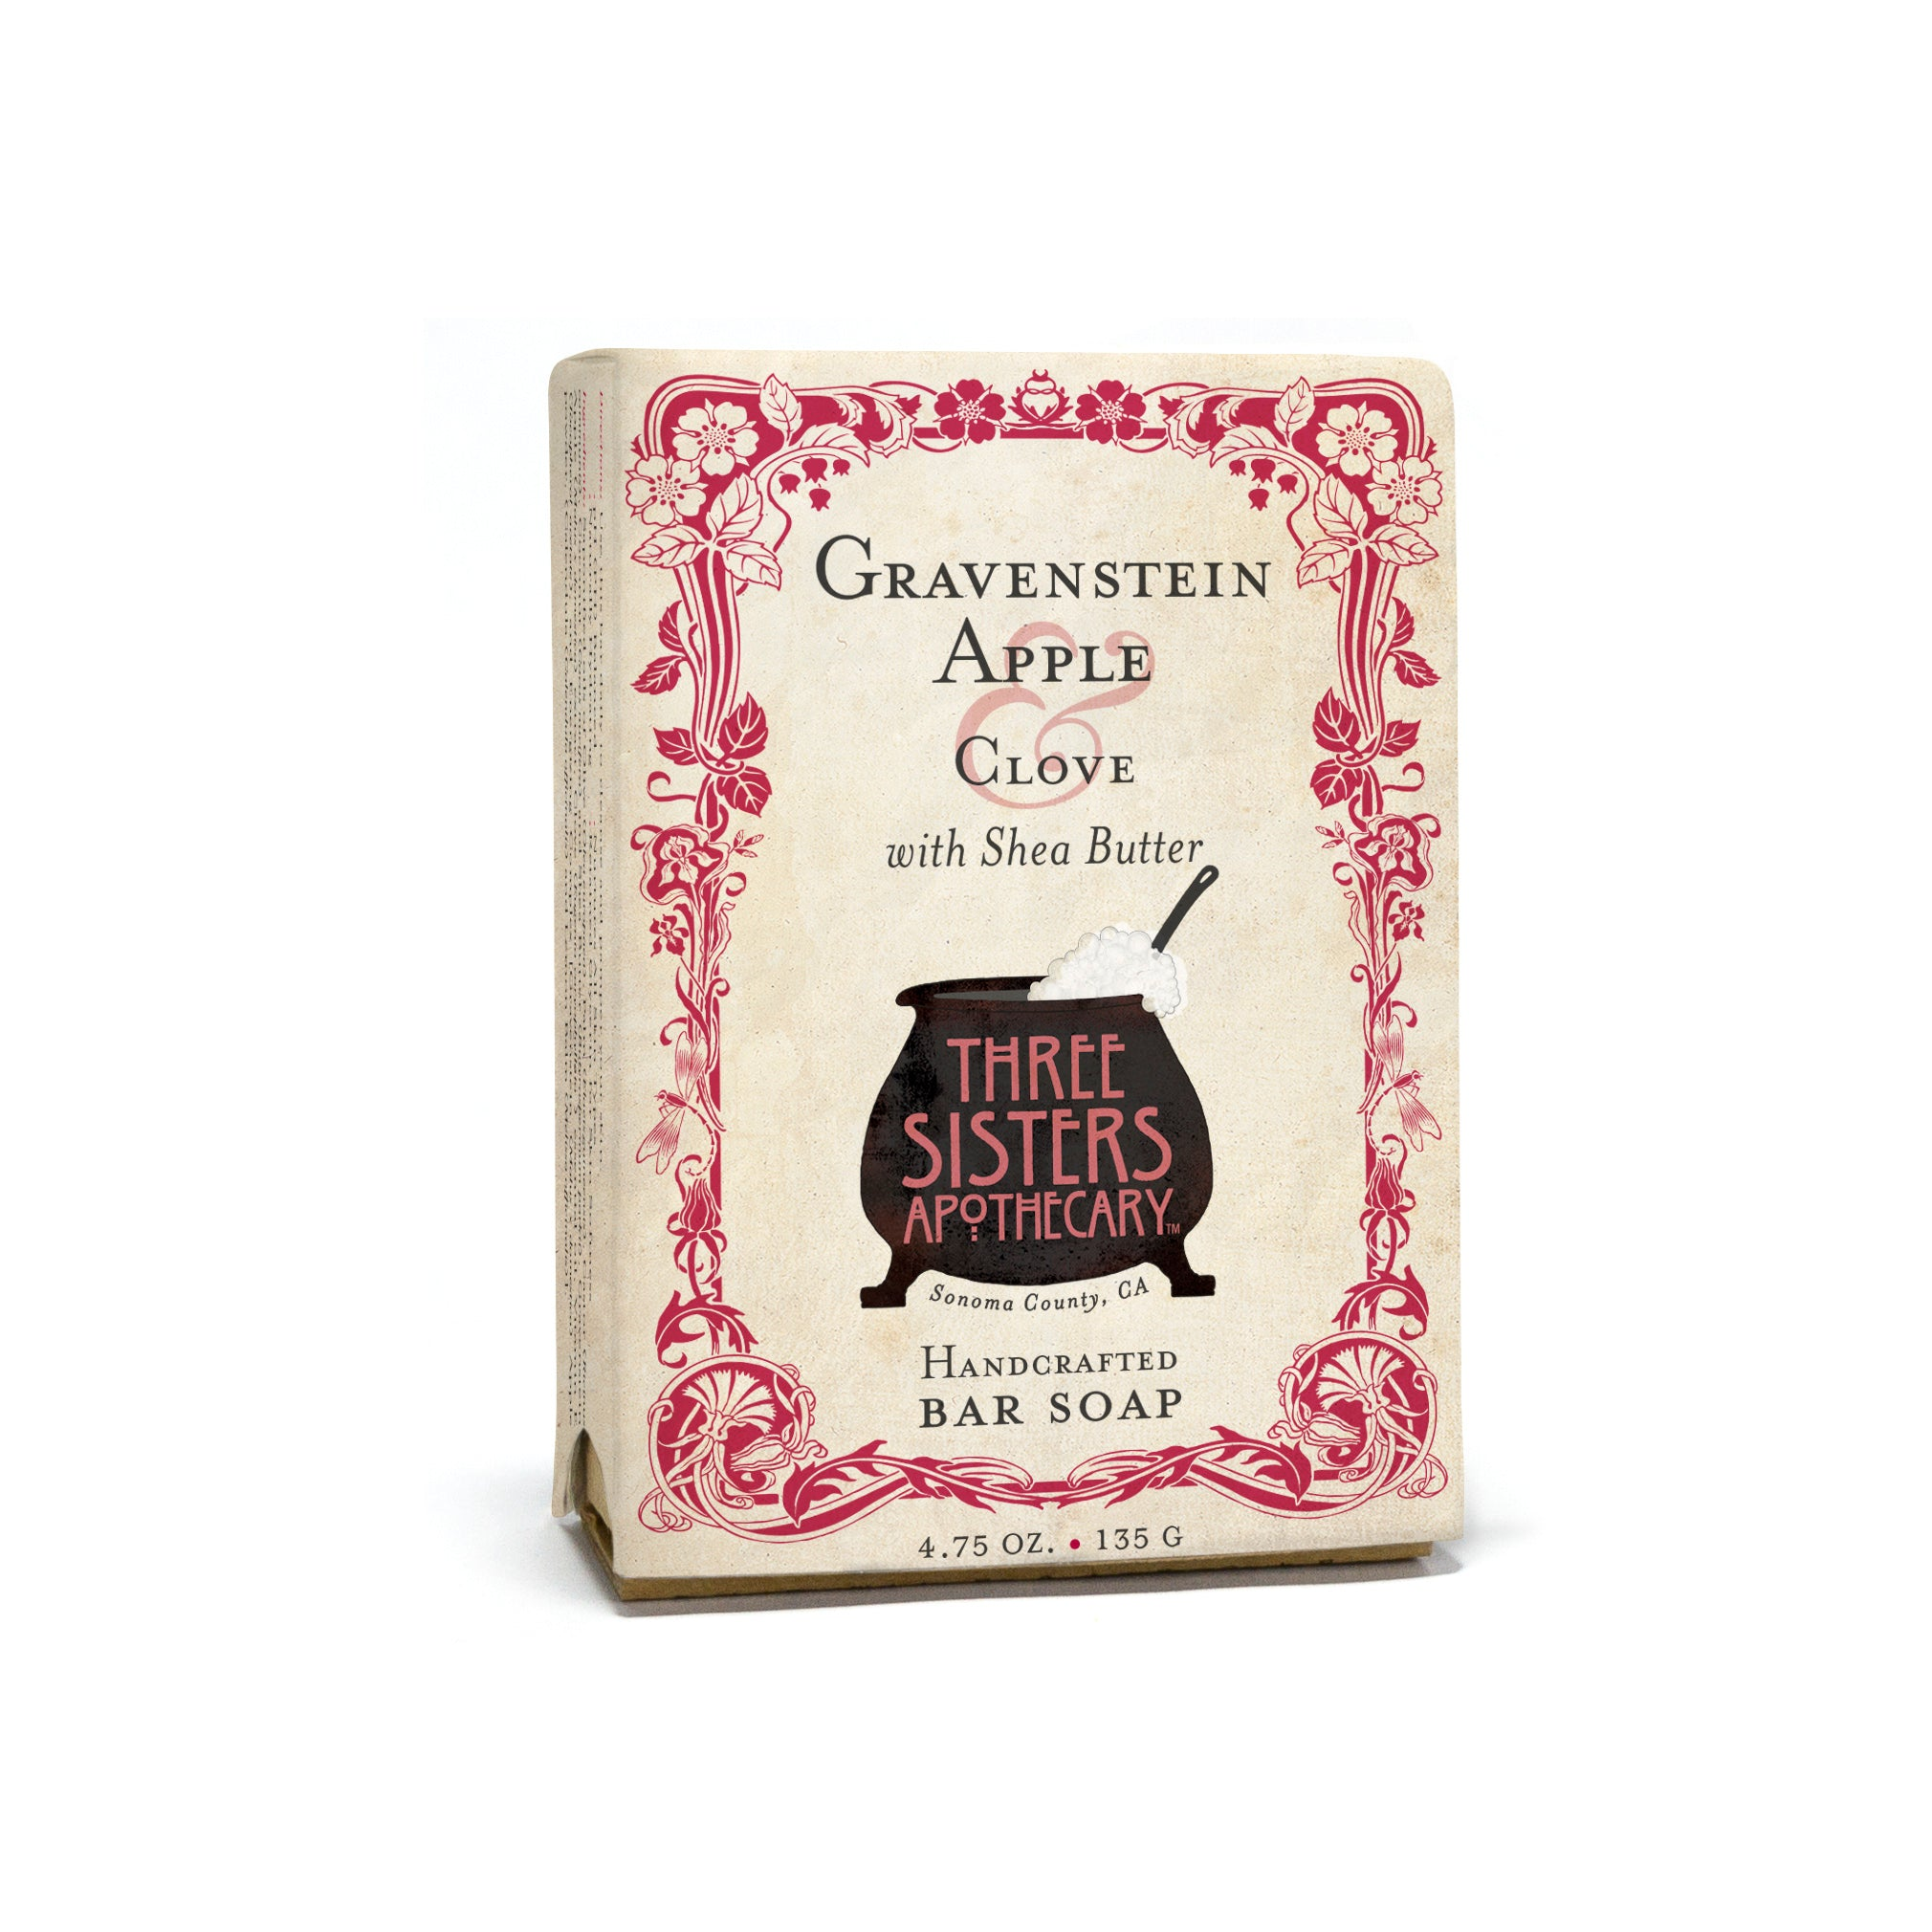 Gravenstein Apple & Clove Bar Soap